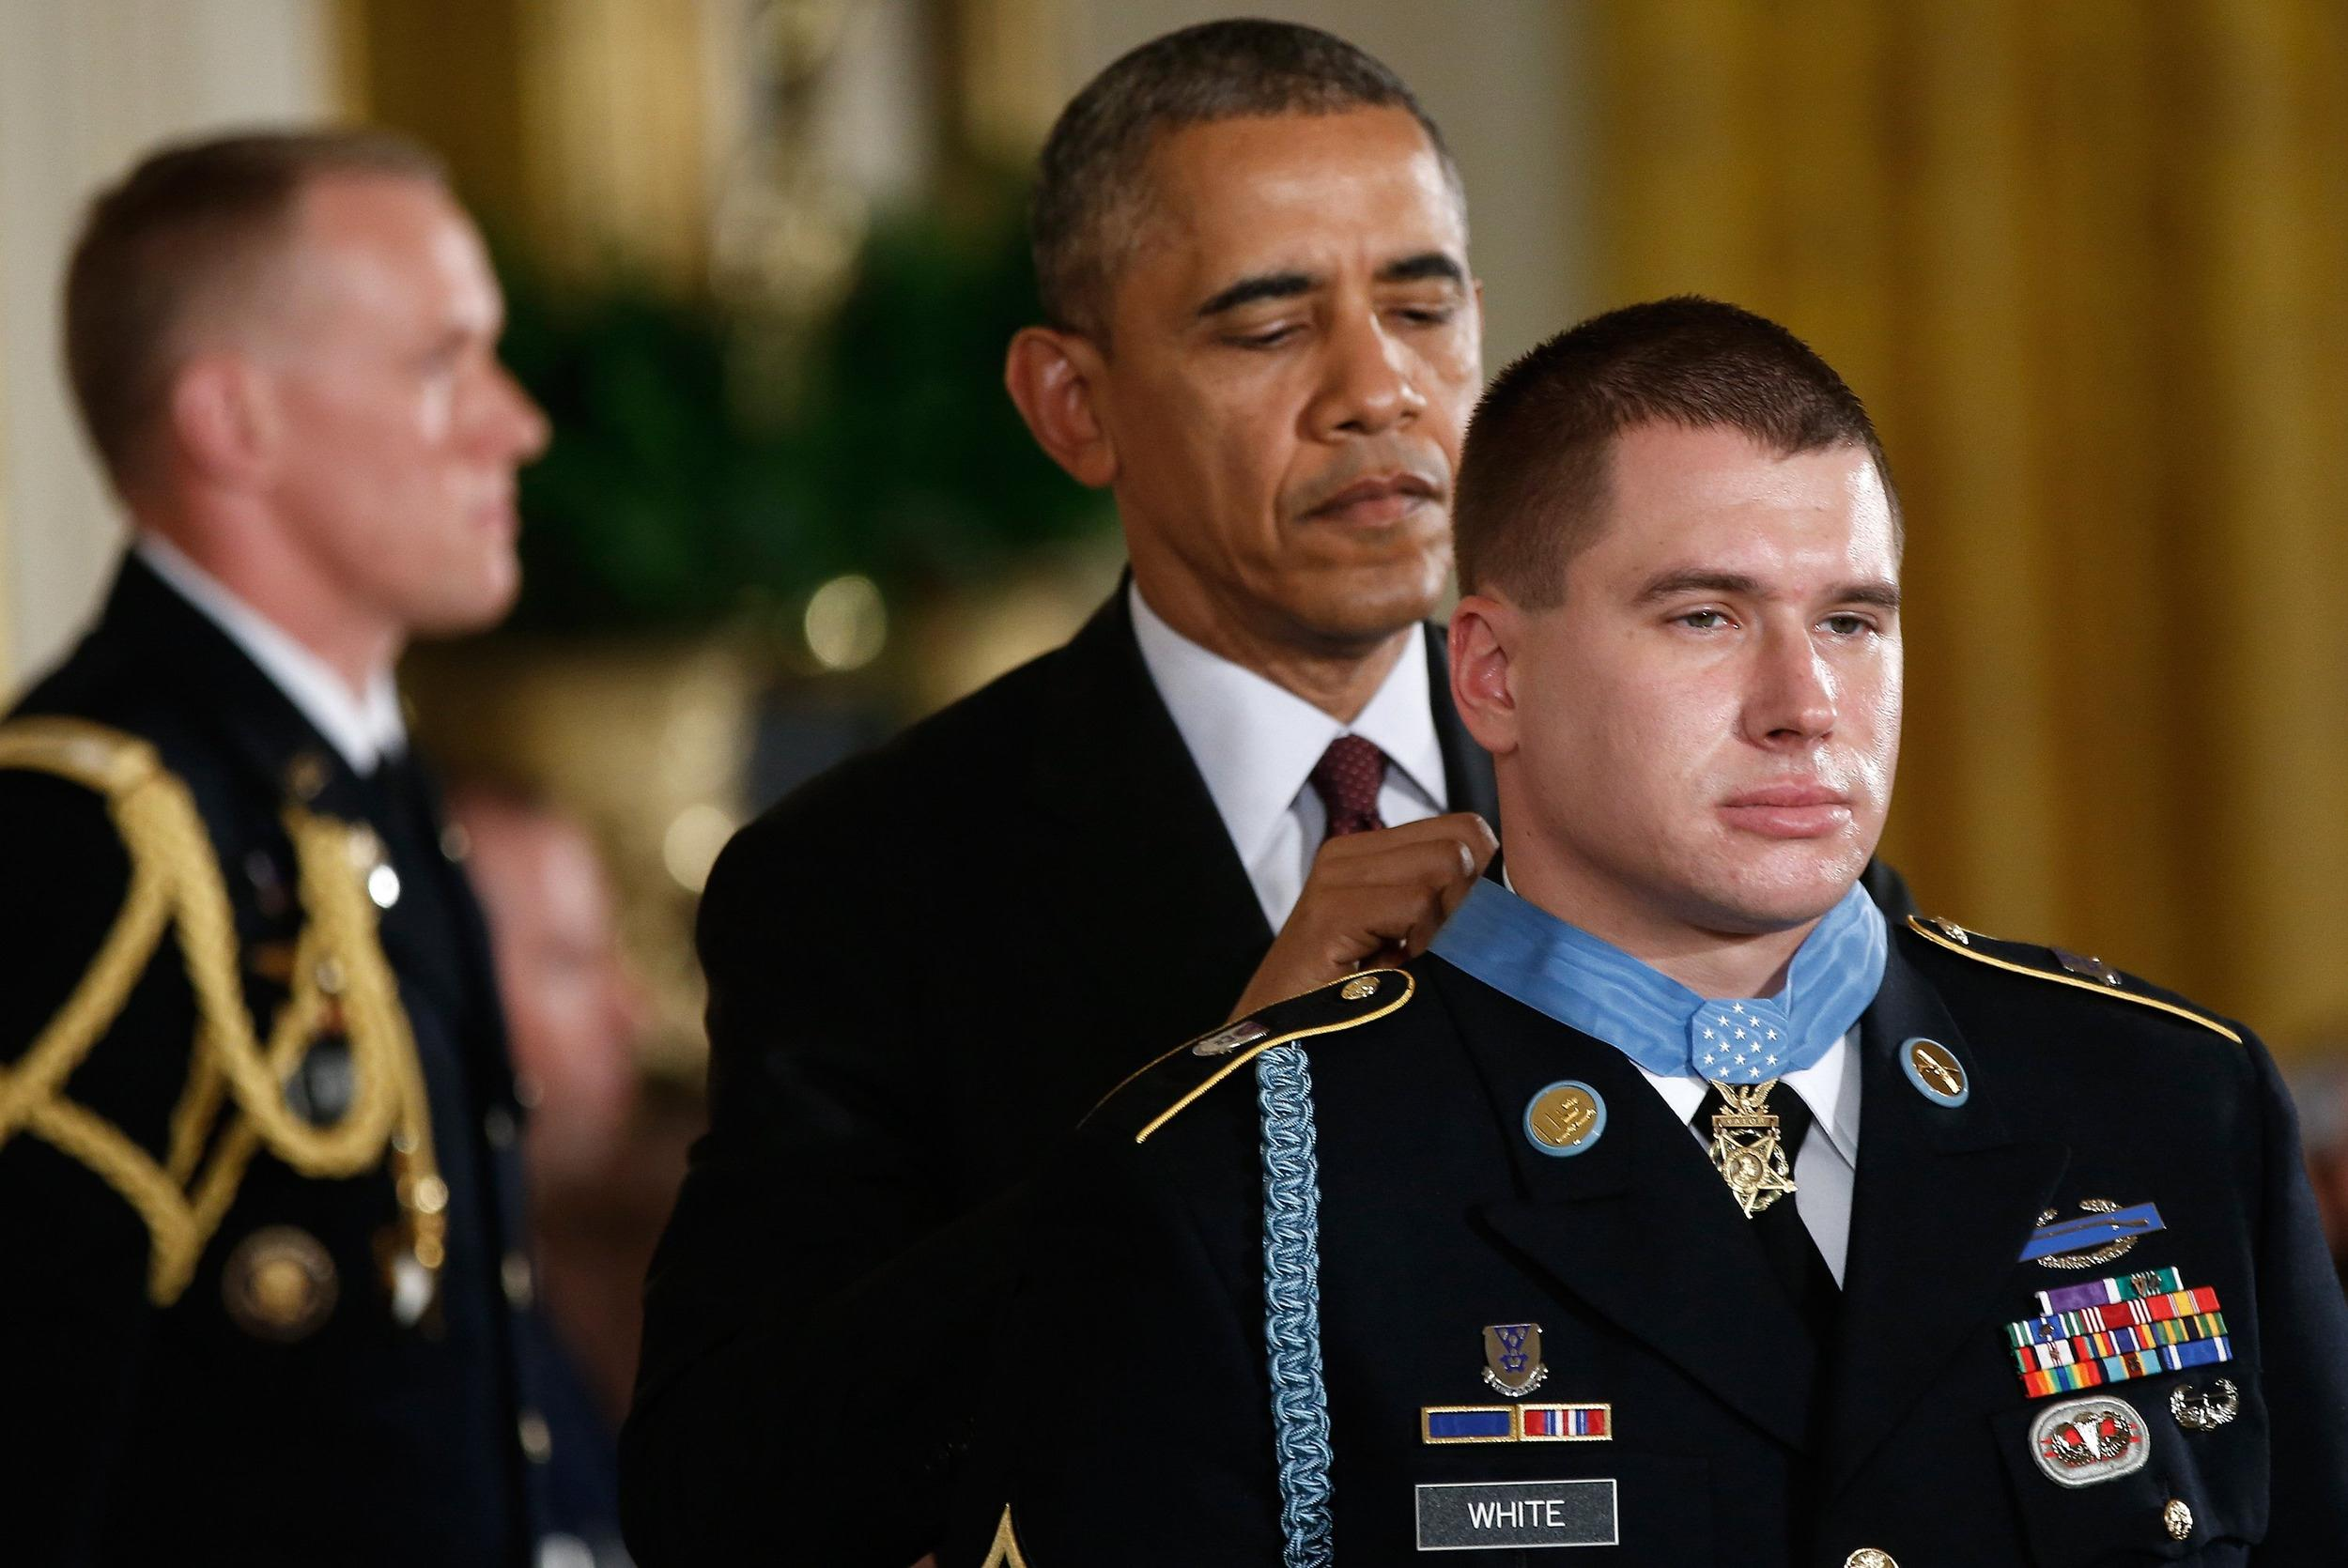 Image: President Obama Awards The Medal Of Honor To Army Sergeant Kyle White